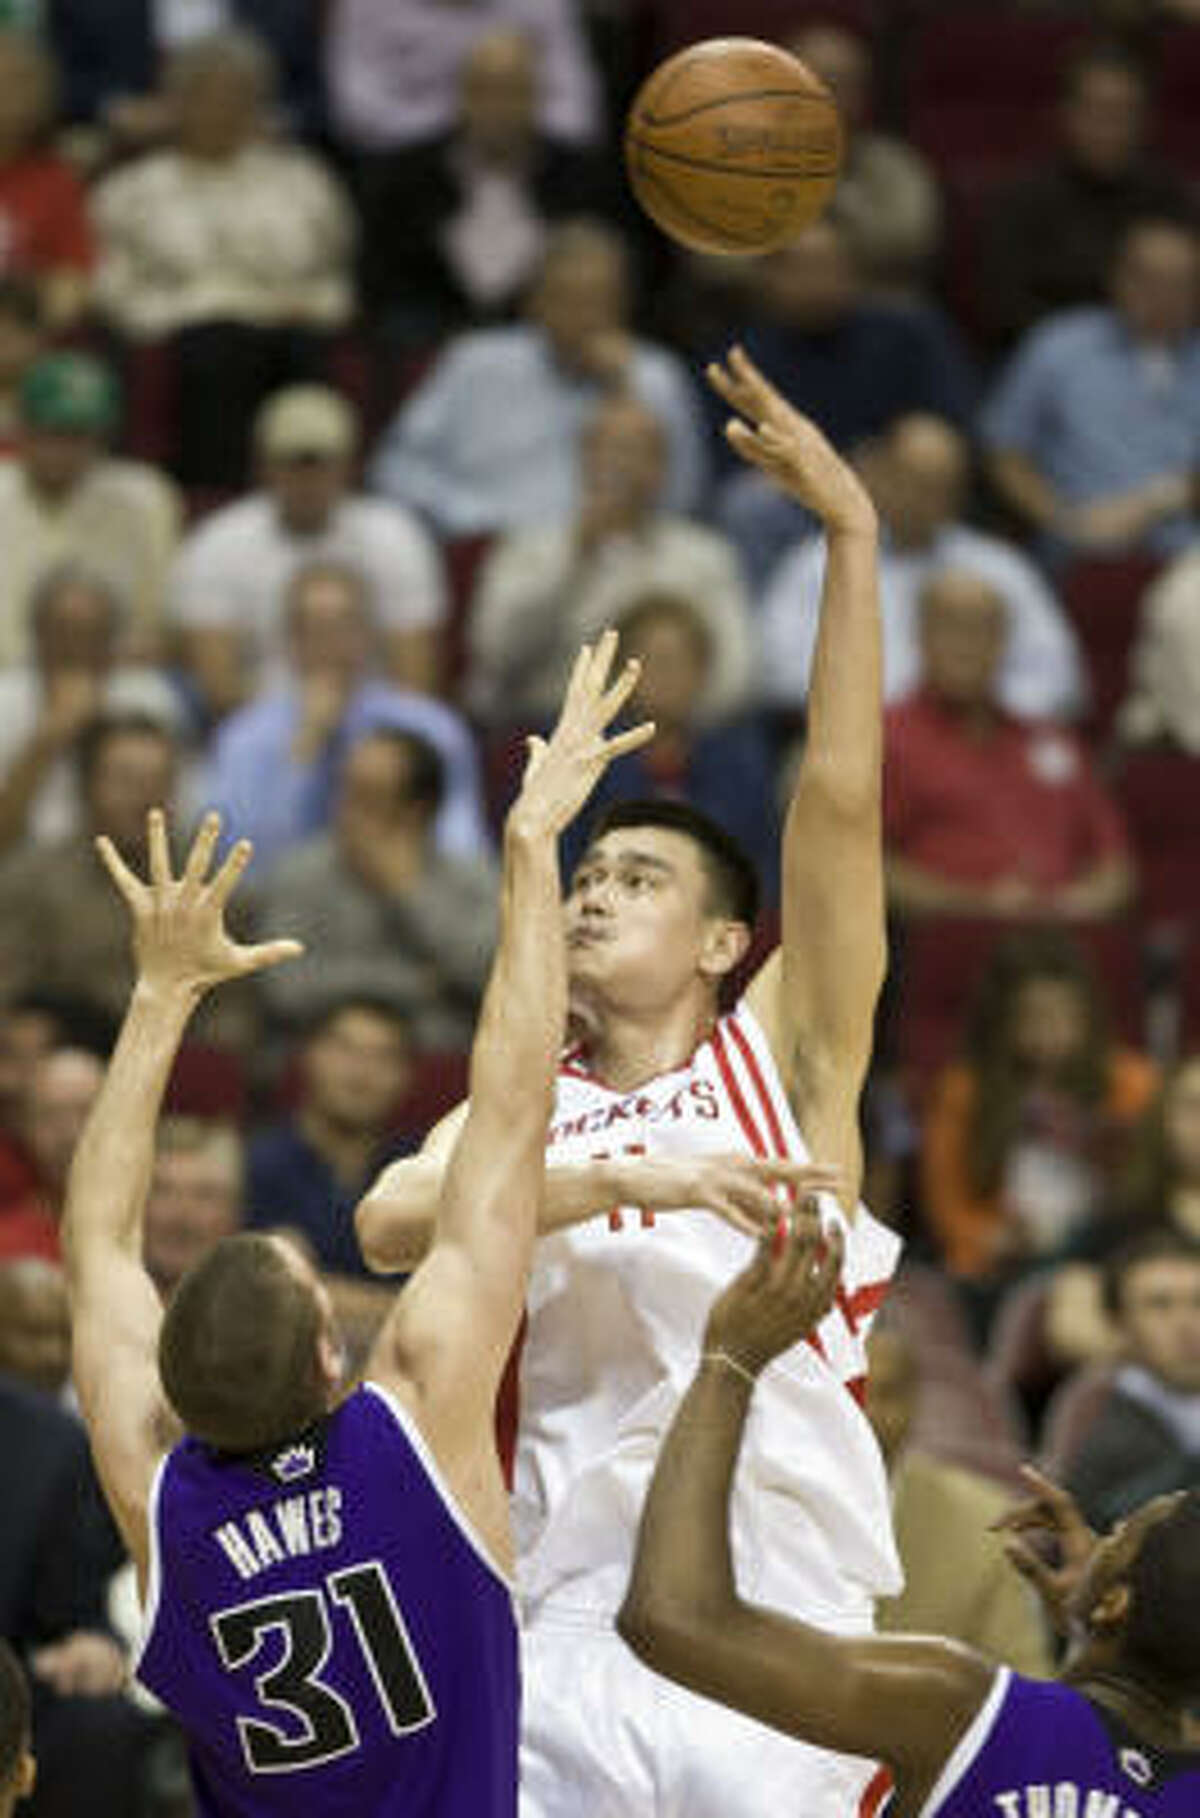 Yao Ming, center, shoots a sky hook over two defenders during first half.